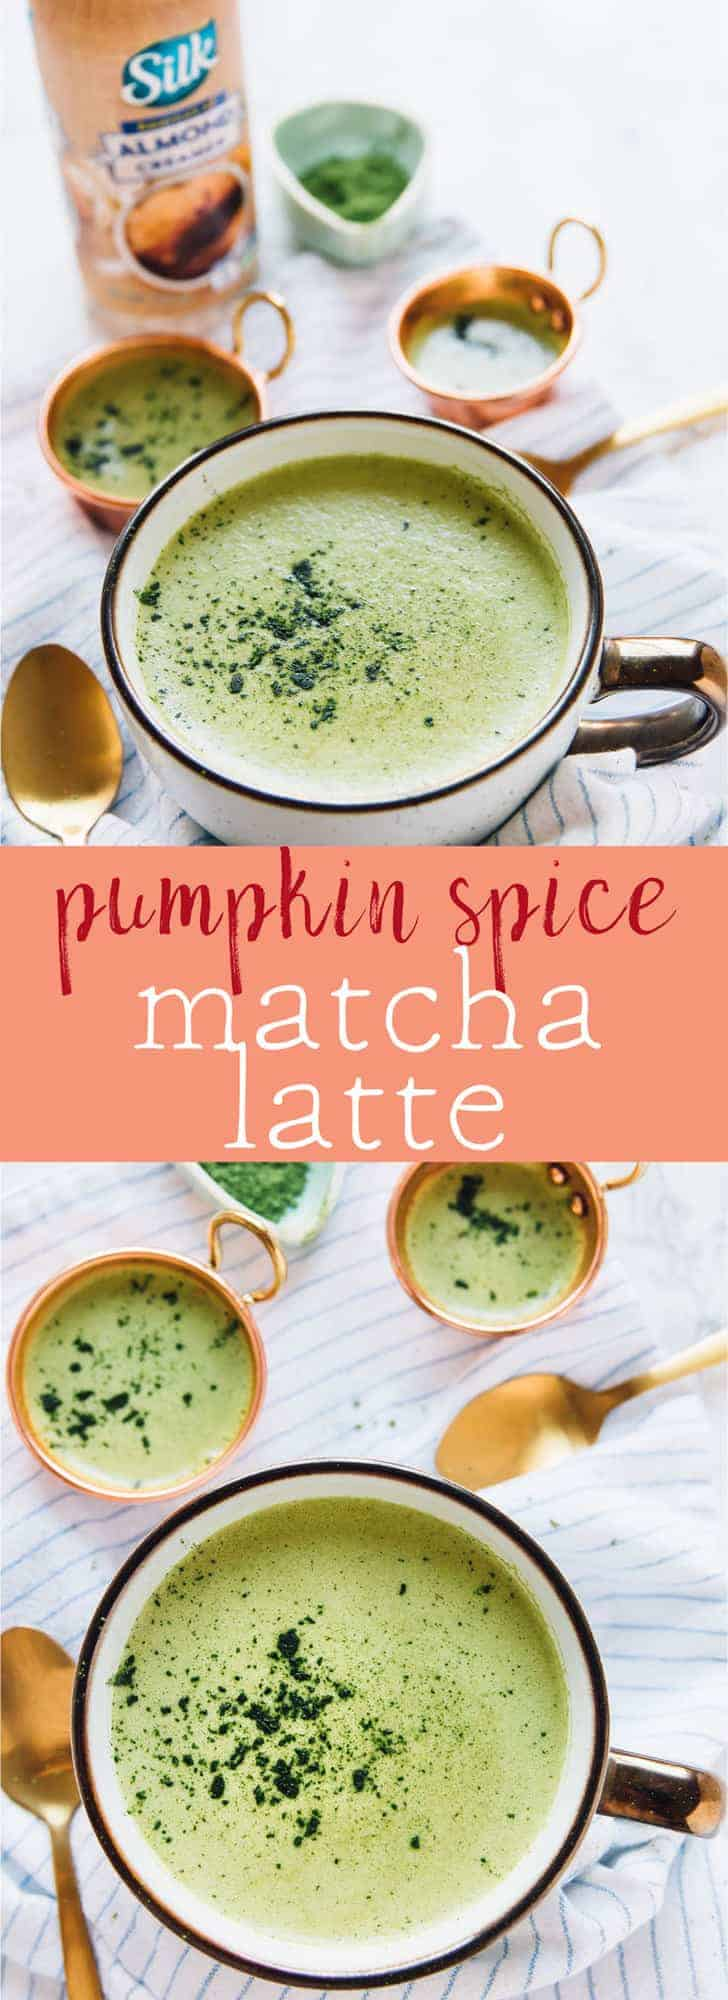 This Pumpkin Spice Matcha Latte is very seasonal and also gives you a delightful boost of energy naturally! It's easy to make and so frothy since it's made in a blender! via https://jessicainthekitchen.com